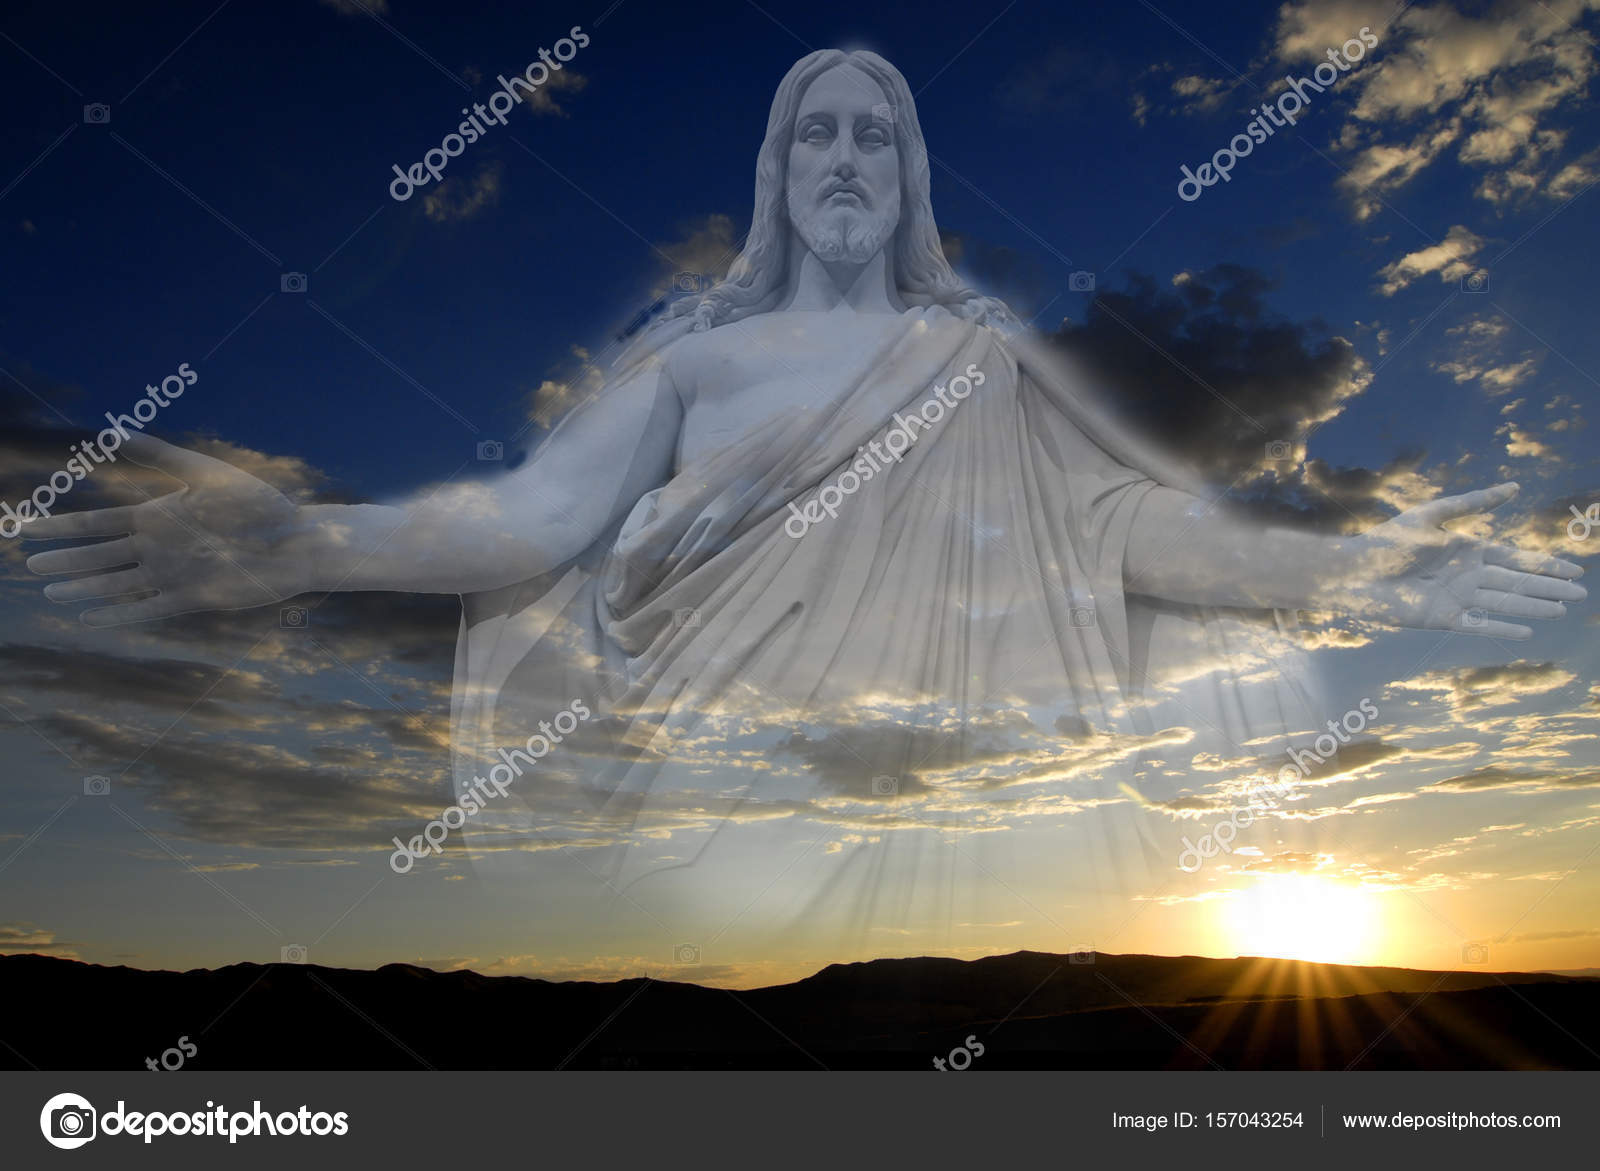 Jesus Sunset Peaceful Creations Sky And Clouds Stock Photo